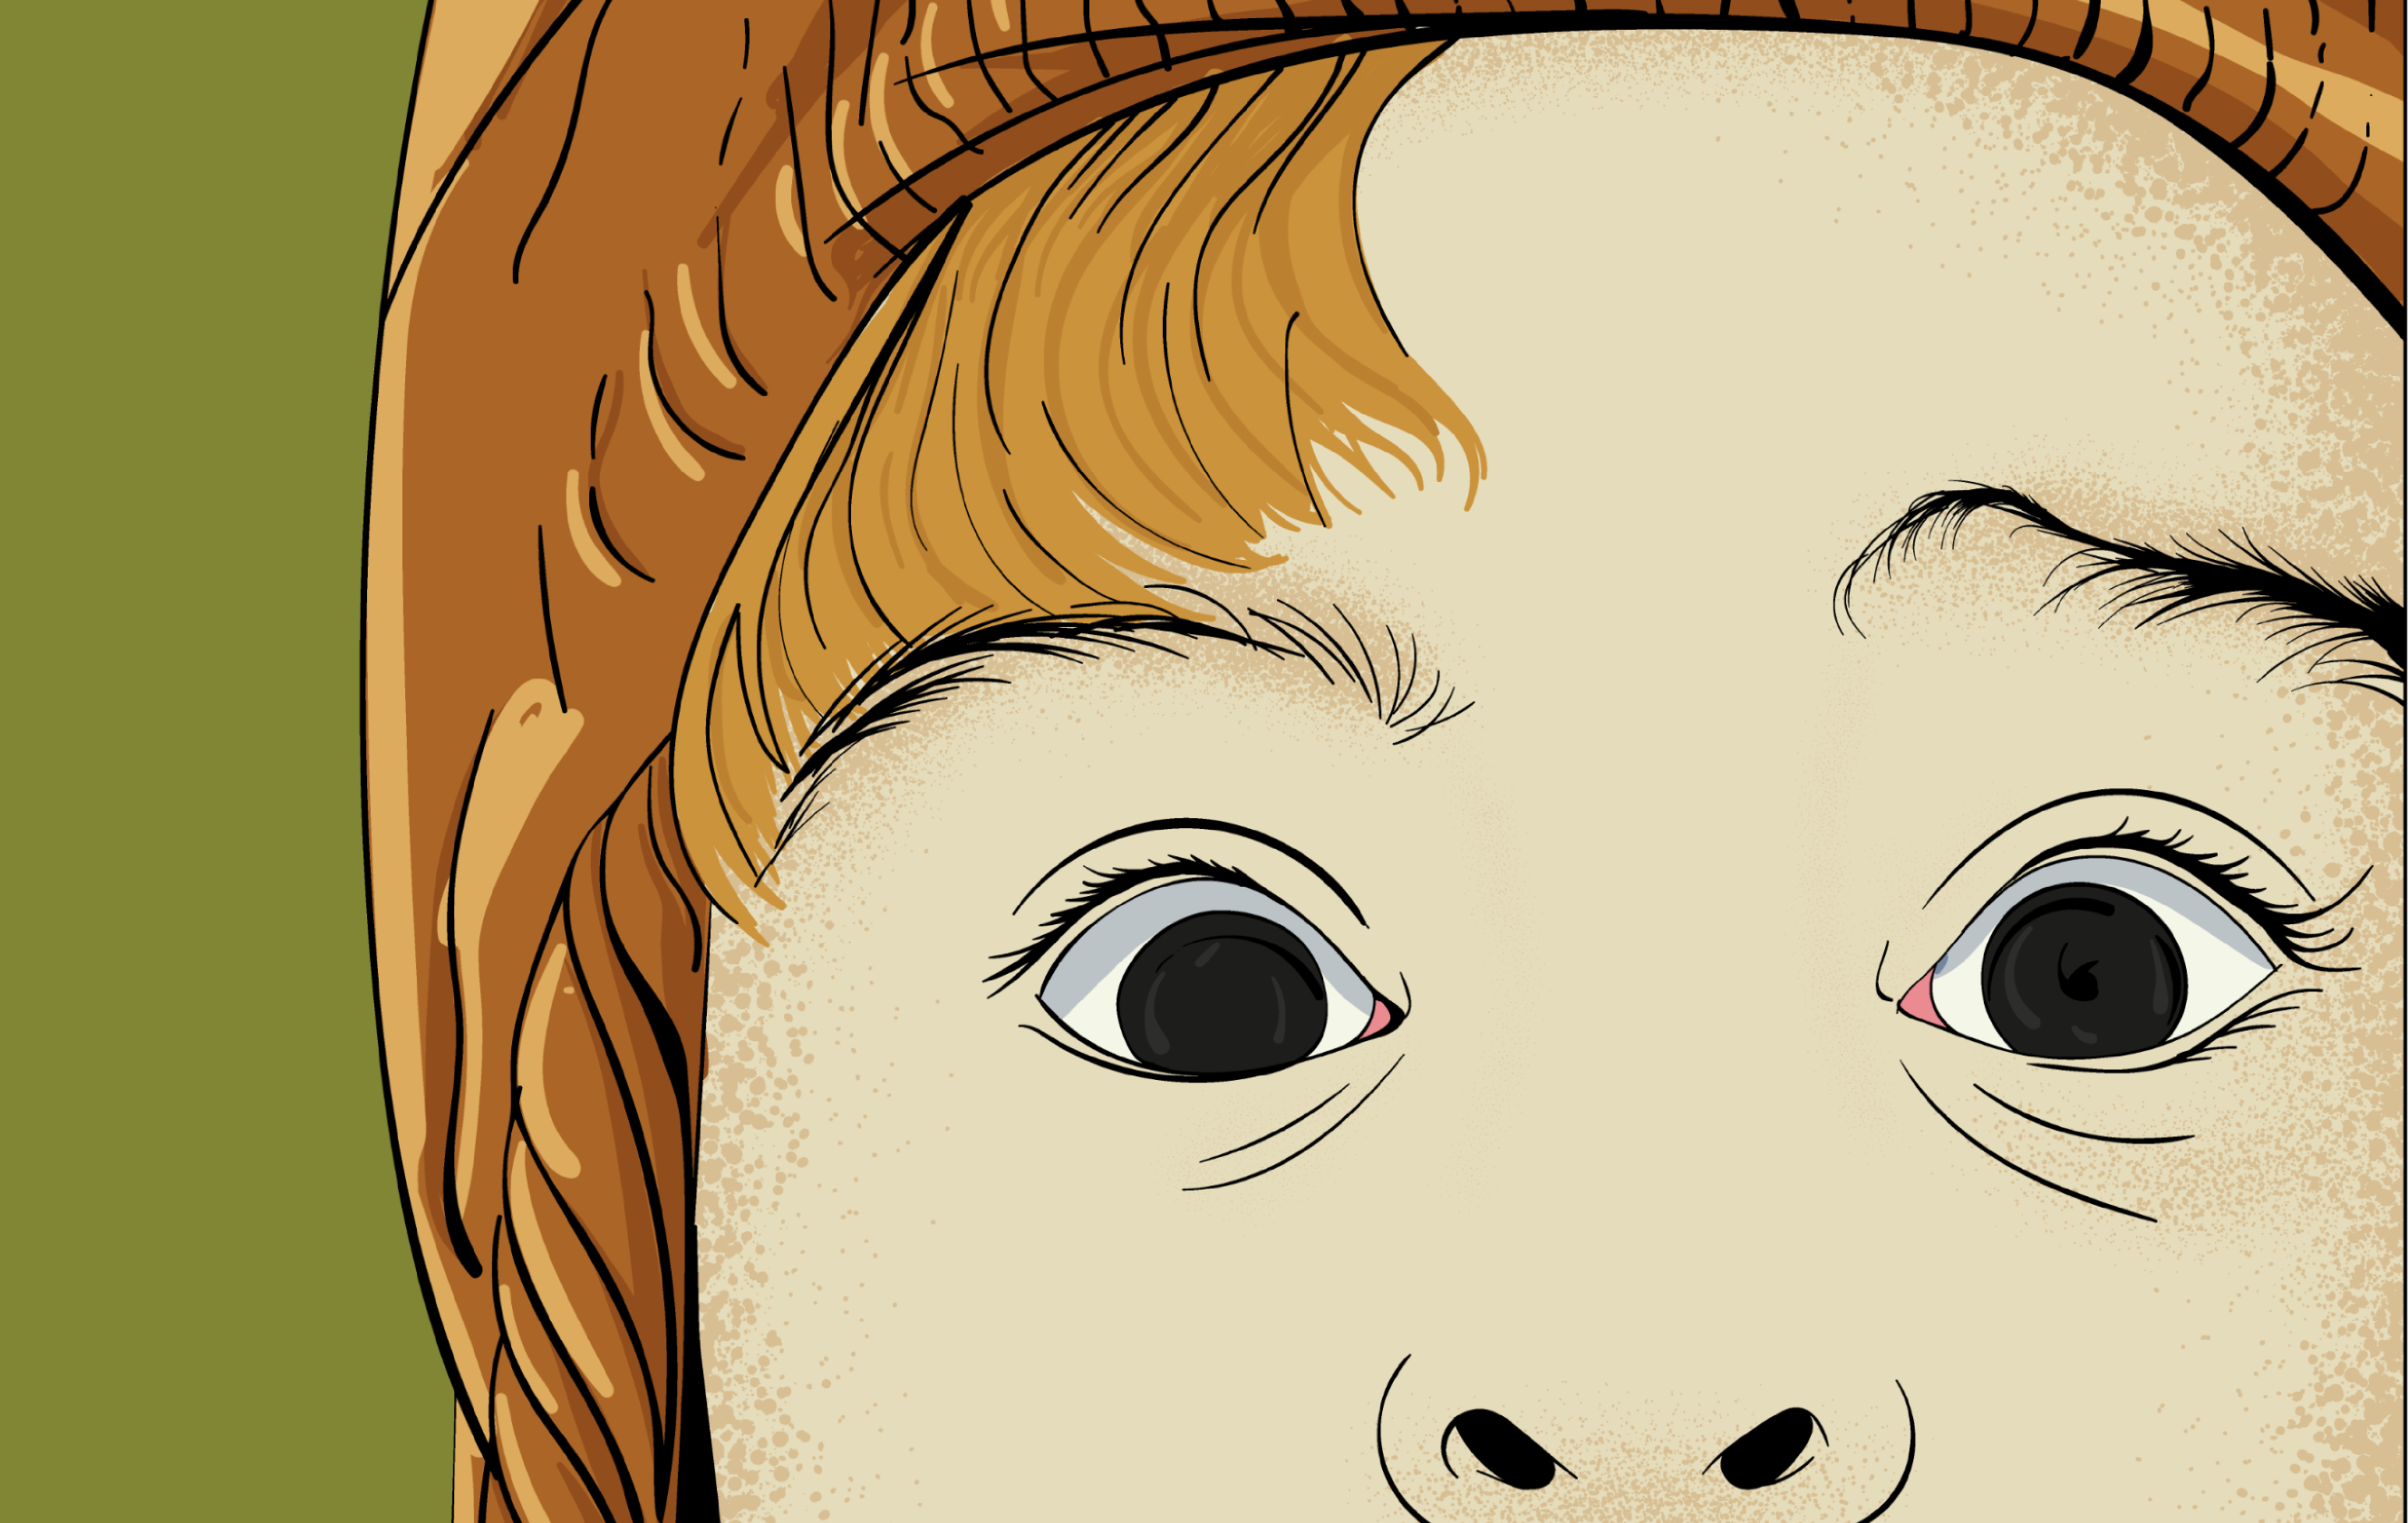 Close up of face of a curious child wearing a brown hat, eyes open wide